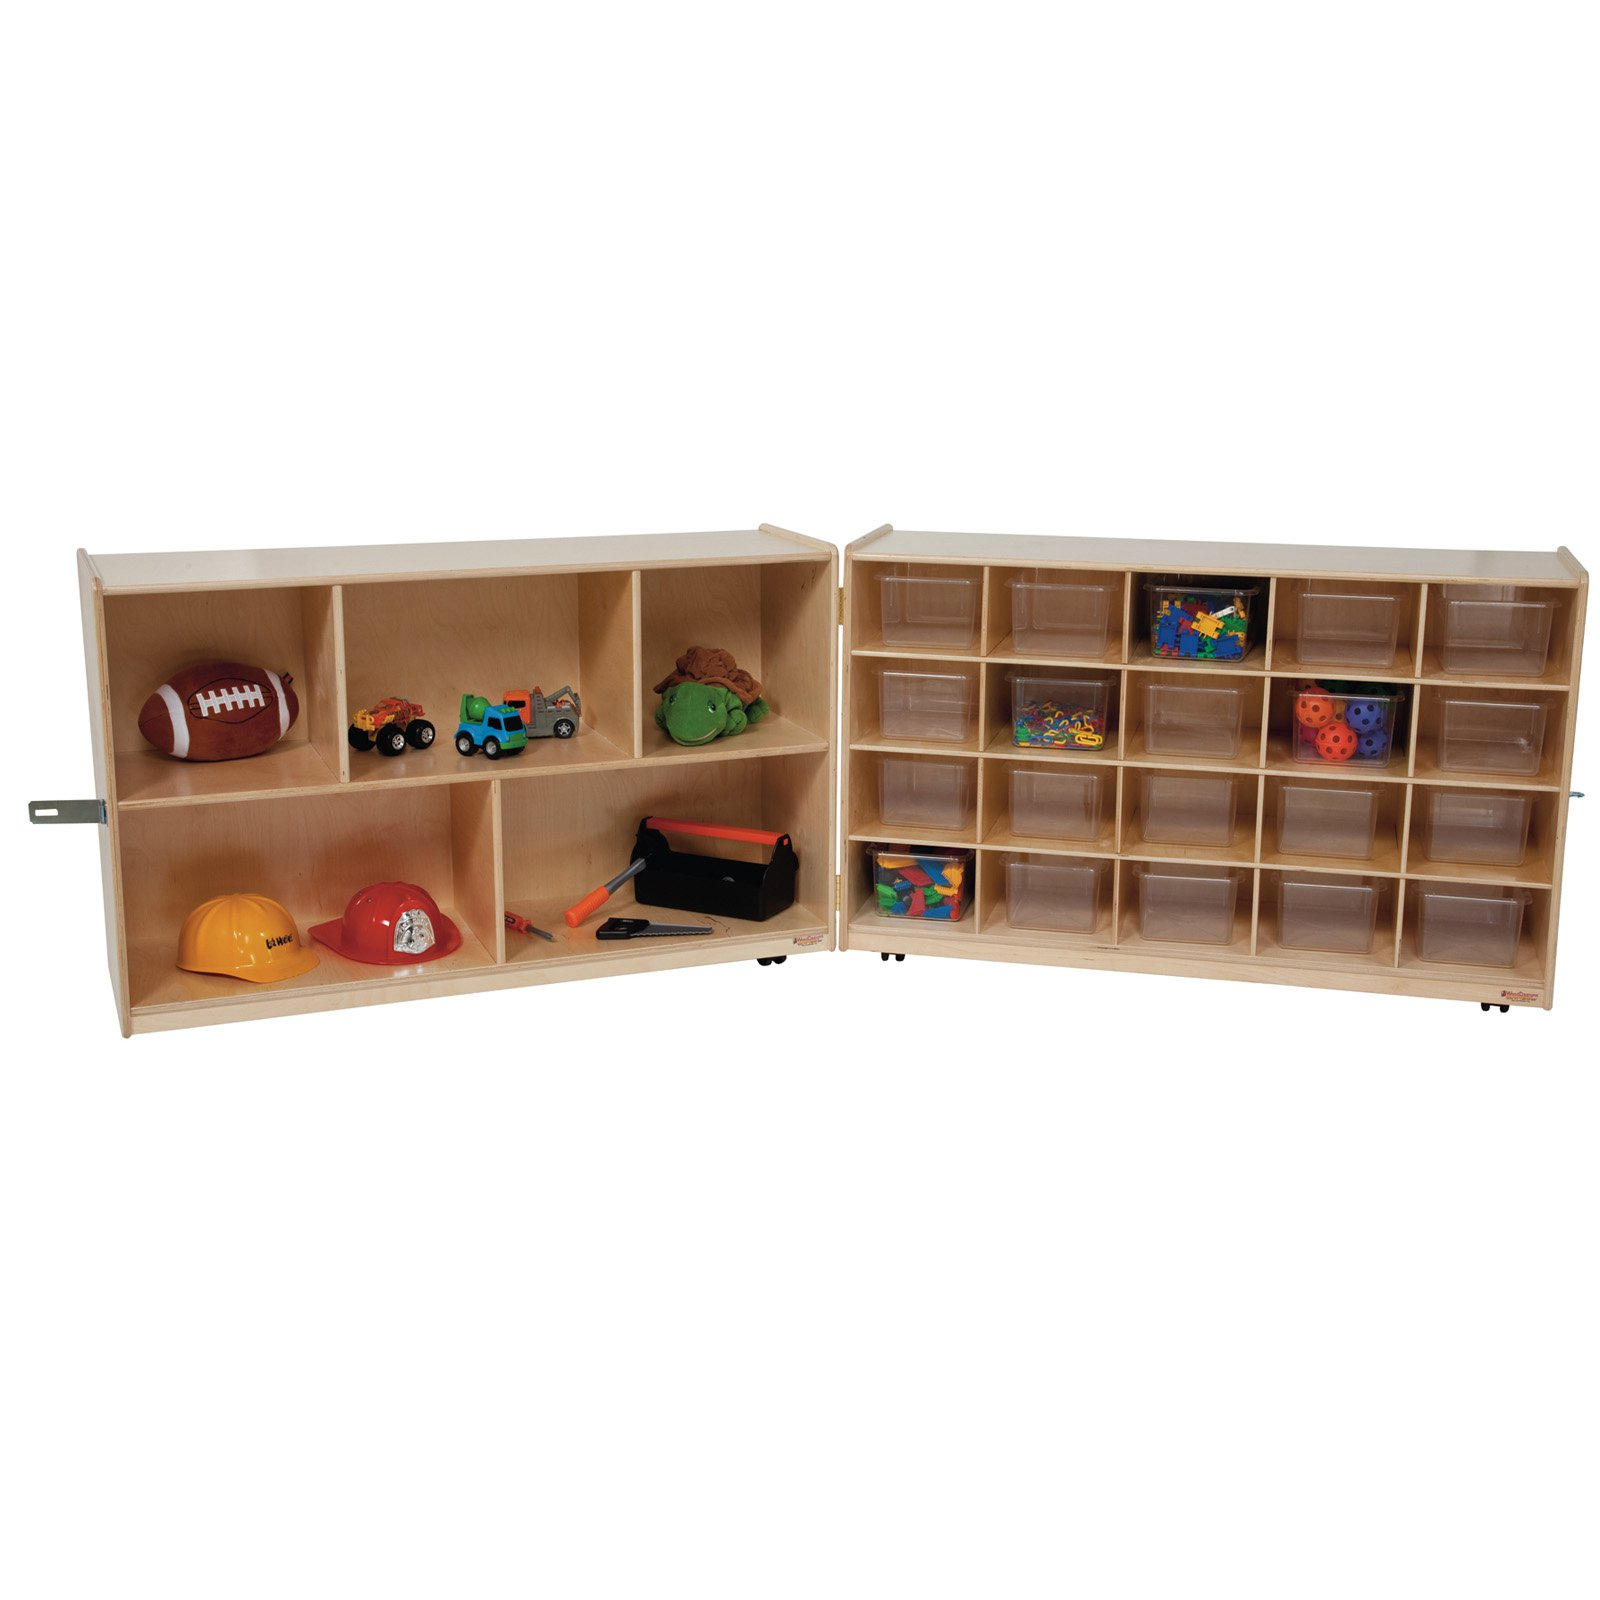 Wood Designs Natural Half and Half Folding Storage with 20 Trays